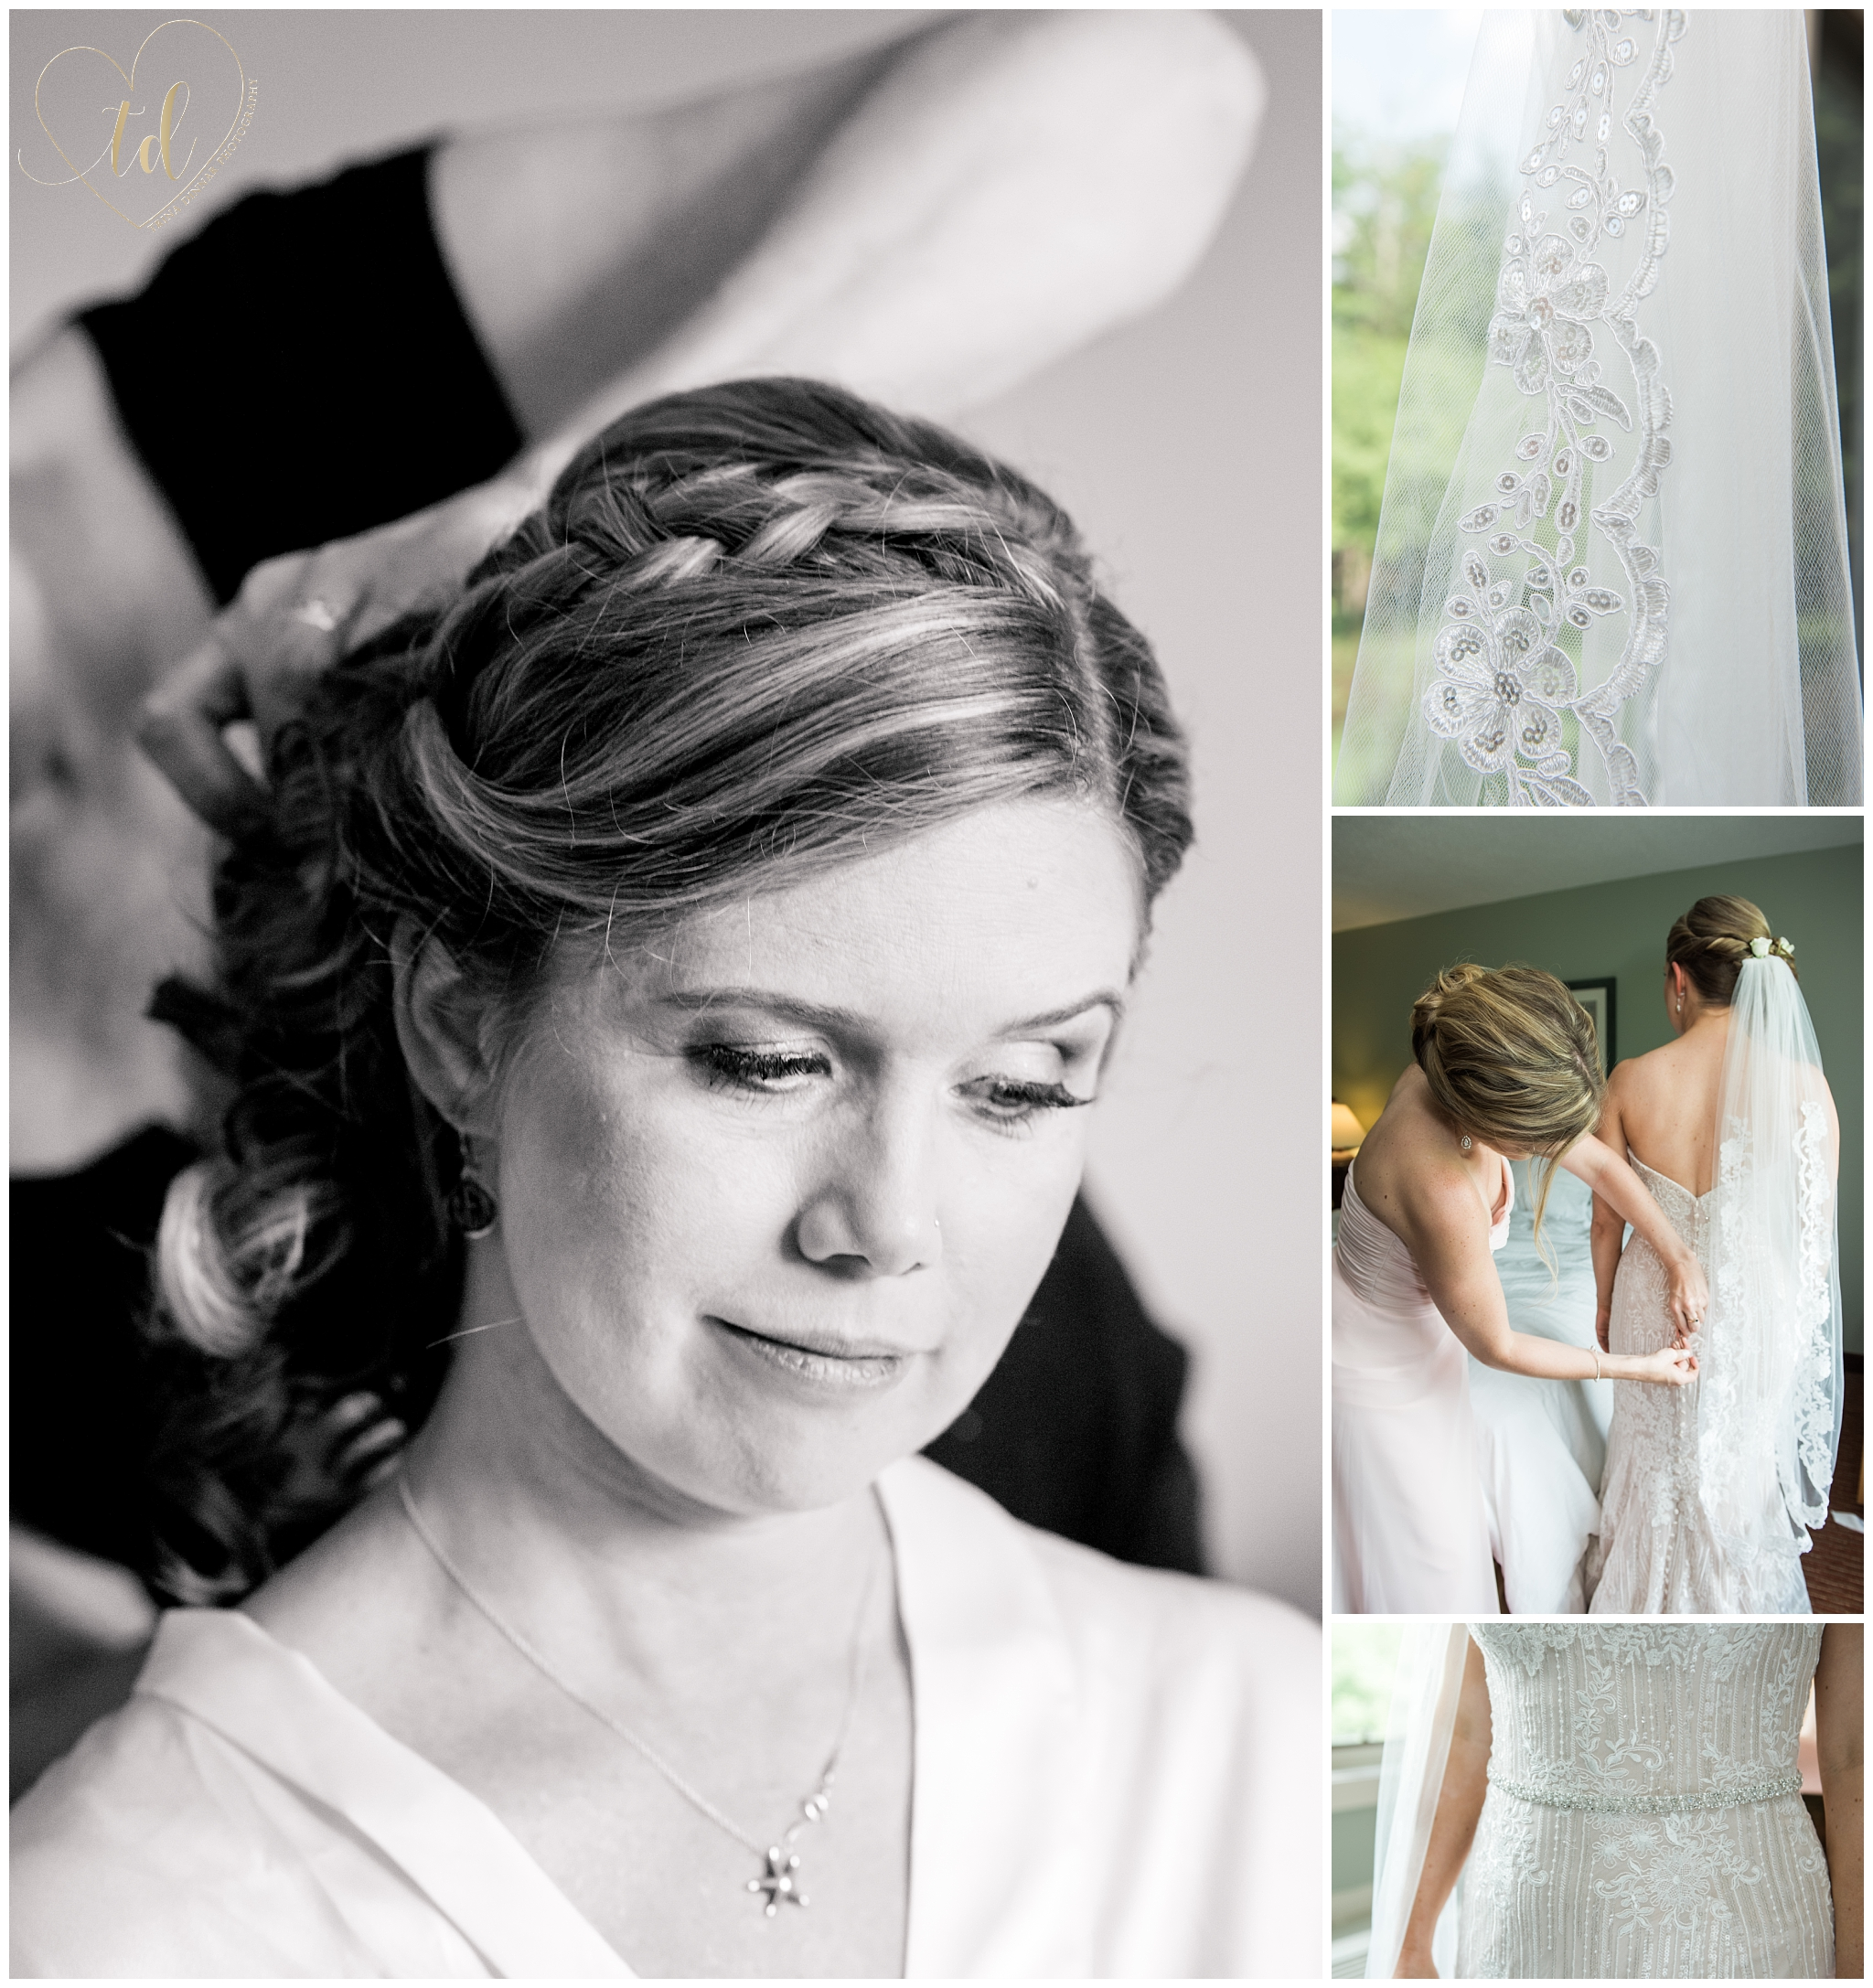 Photos of a Maine bride getting ready for her wedding.